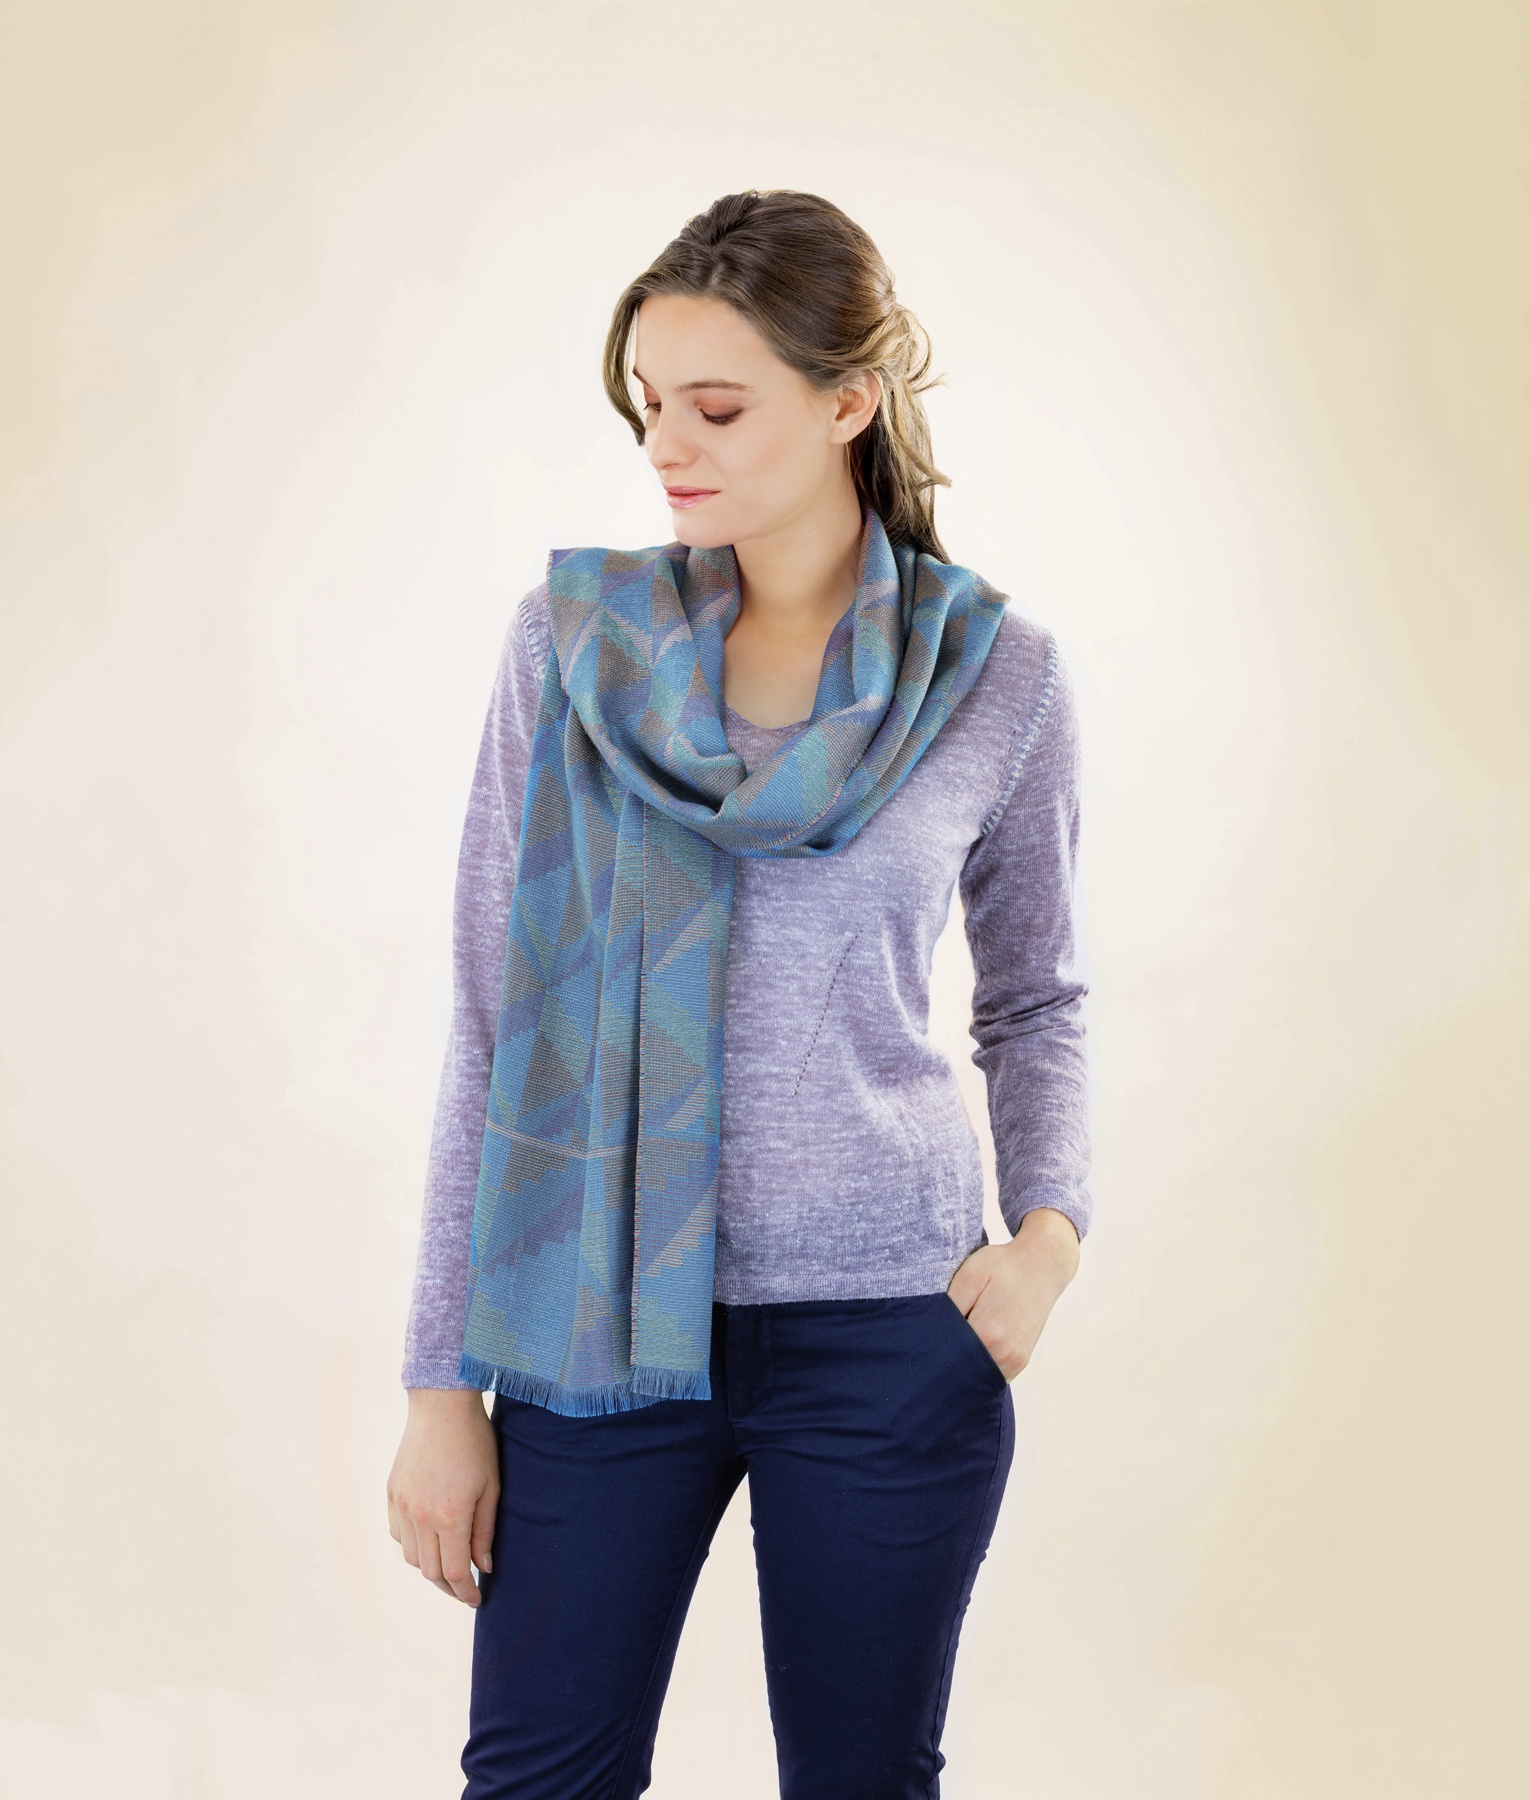 ABSTRACT GEMS SCARF C002